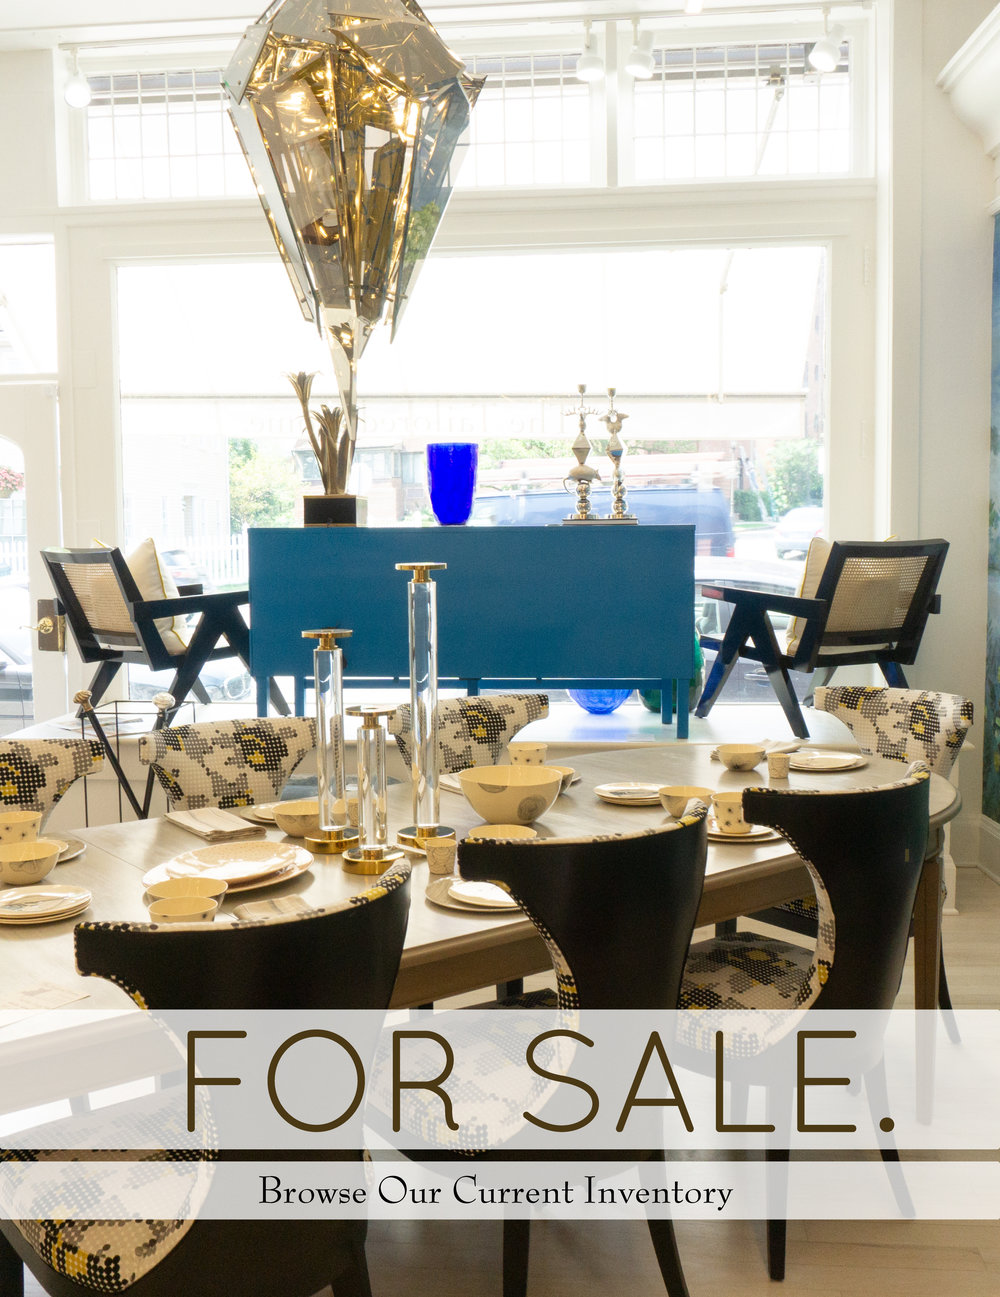 forsale2-new-greenwich.jpg